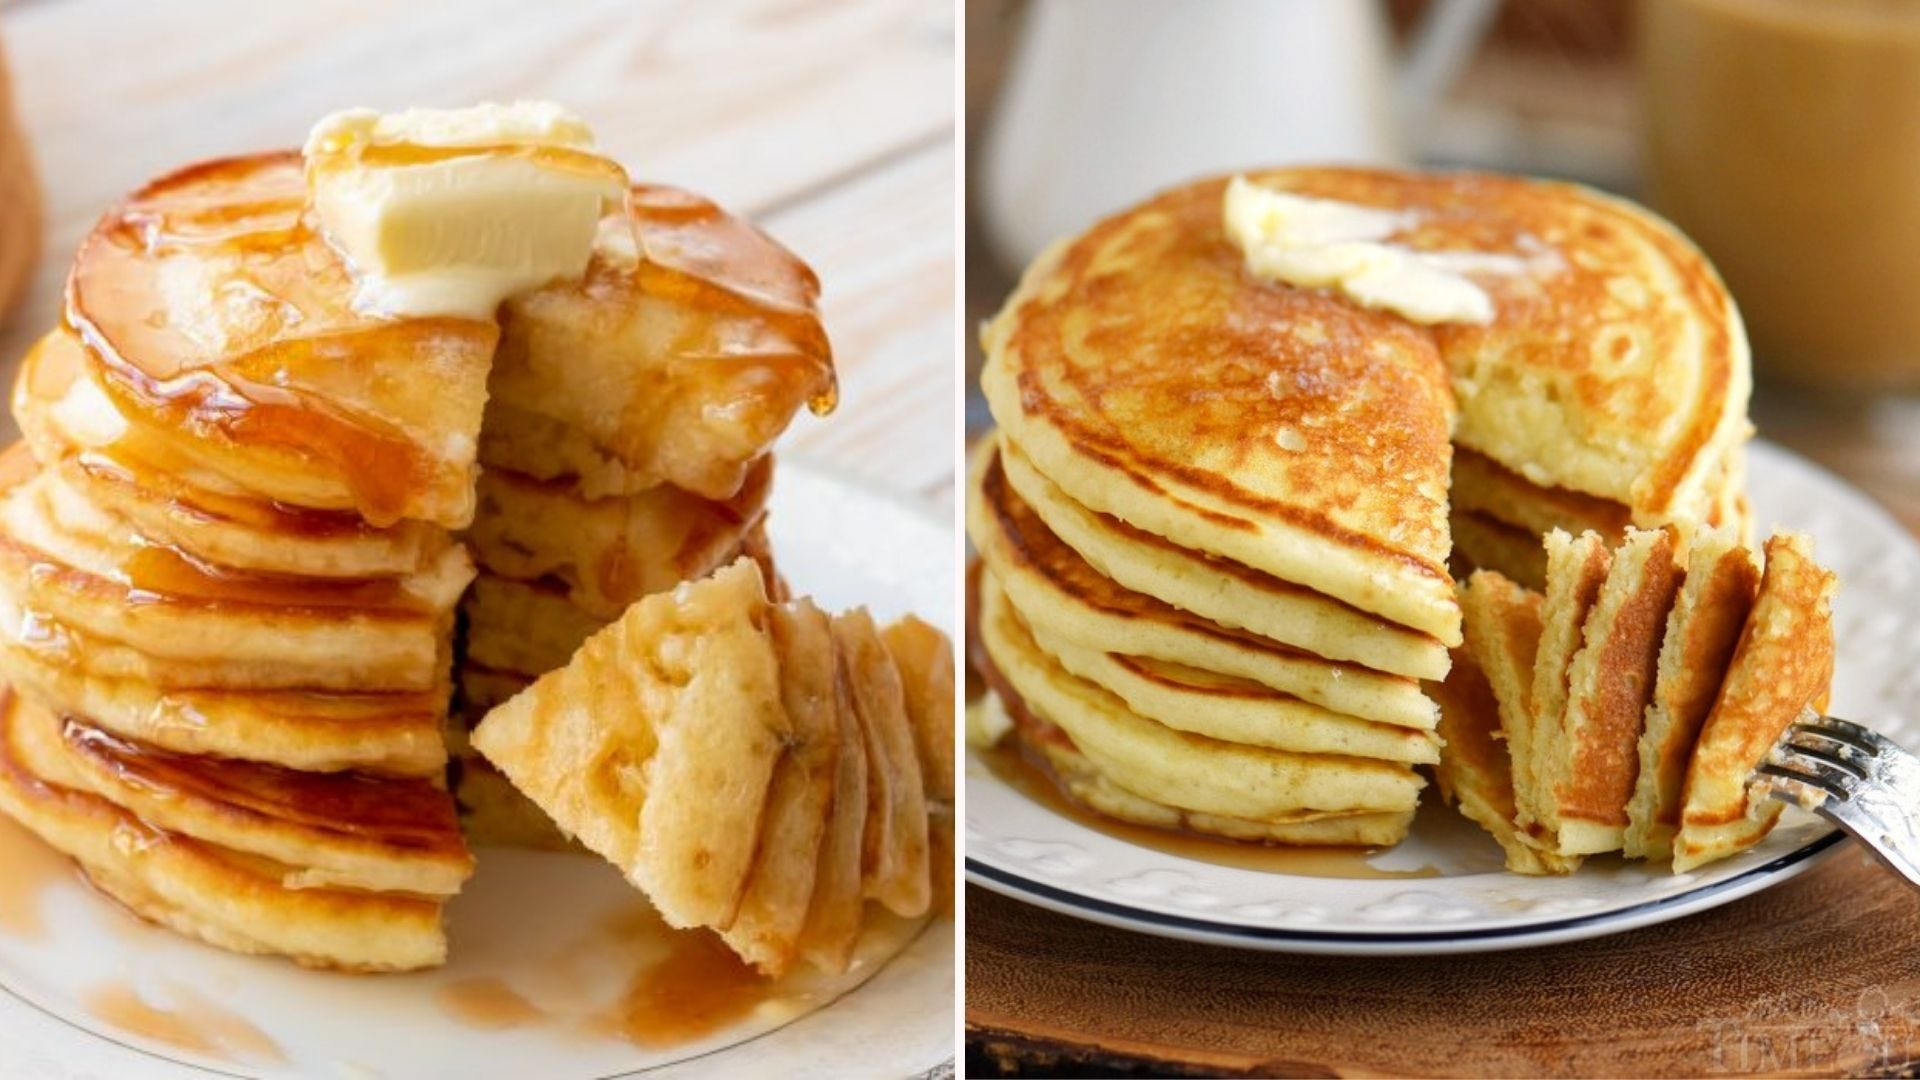 One stack of fluffy buttermilk pancakes with butter and syrup on top, and one topped with just a pat of butter.